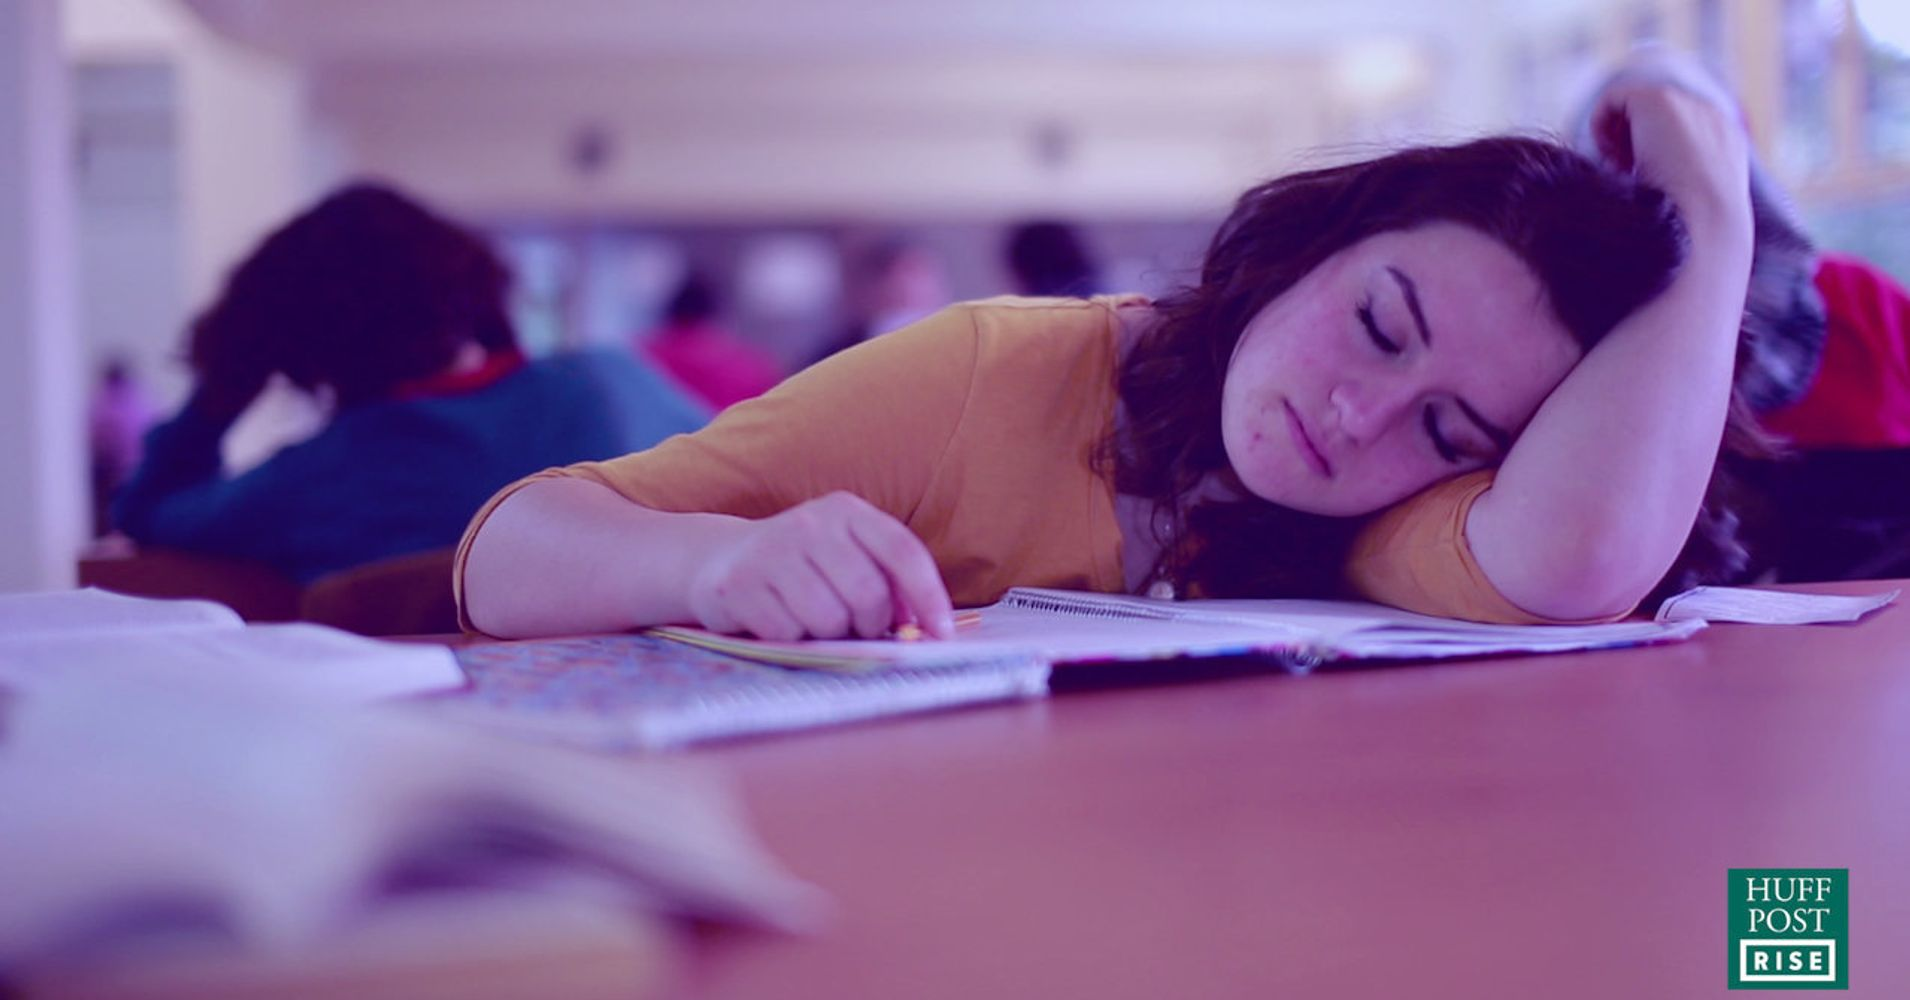 sleep deprivation in adolescence Avoiding sleep deprivation it goes without saying that sleep is of the upmost importance for adolescence get help for adolescent sleep disorders sometimes these methods still don't help and you're left feeling helpless thankfully, there are other forms of assistance.